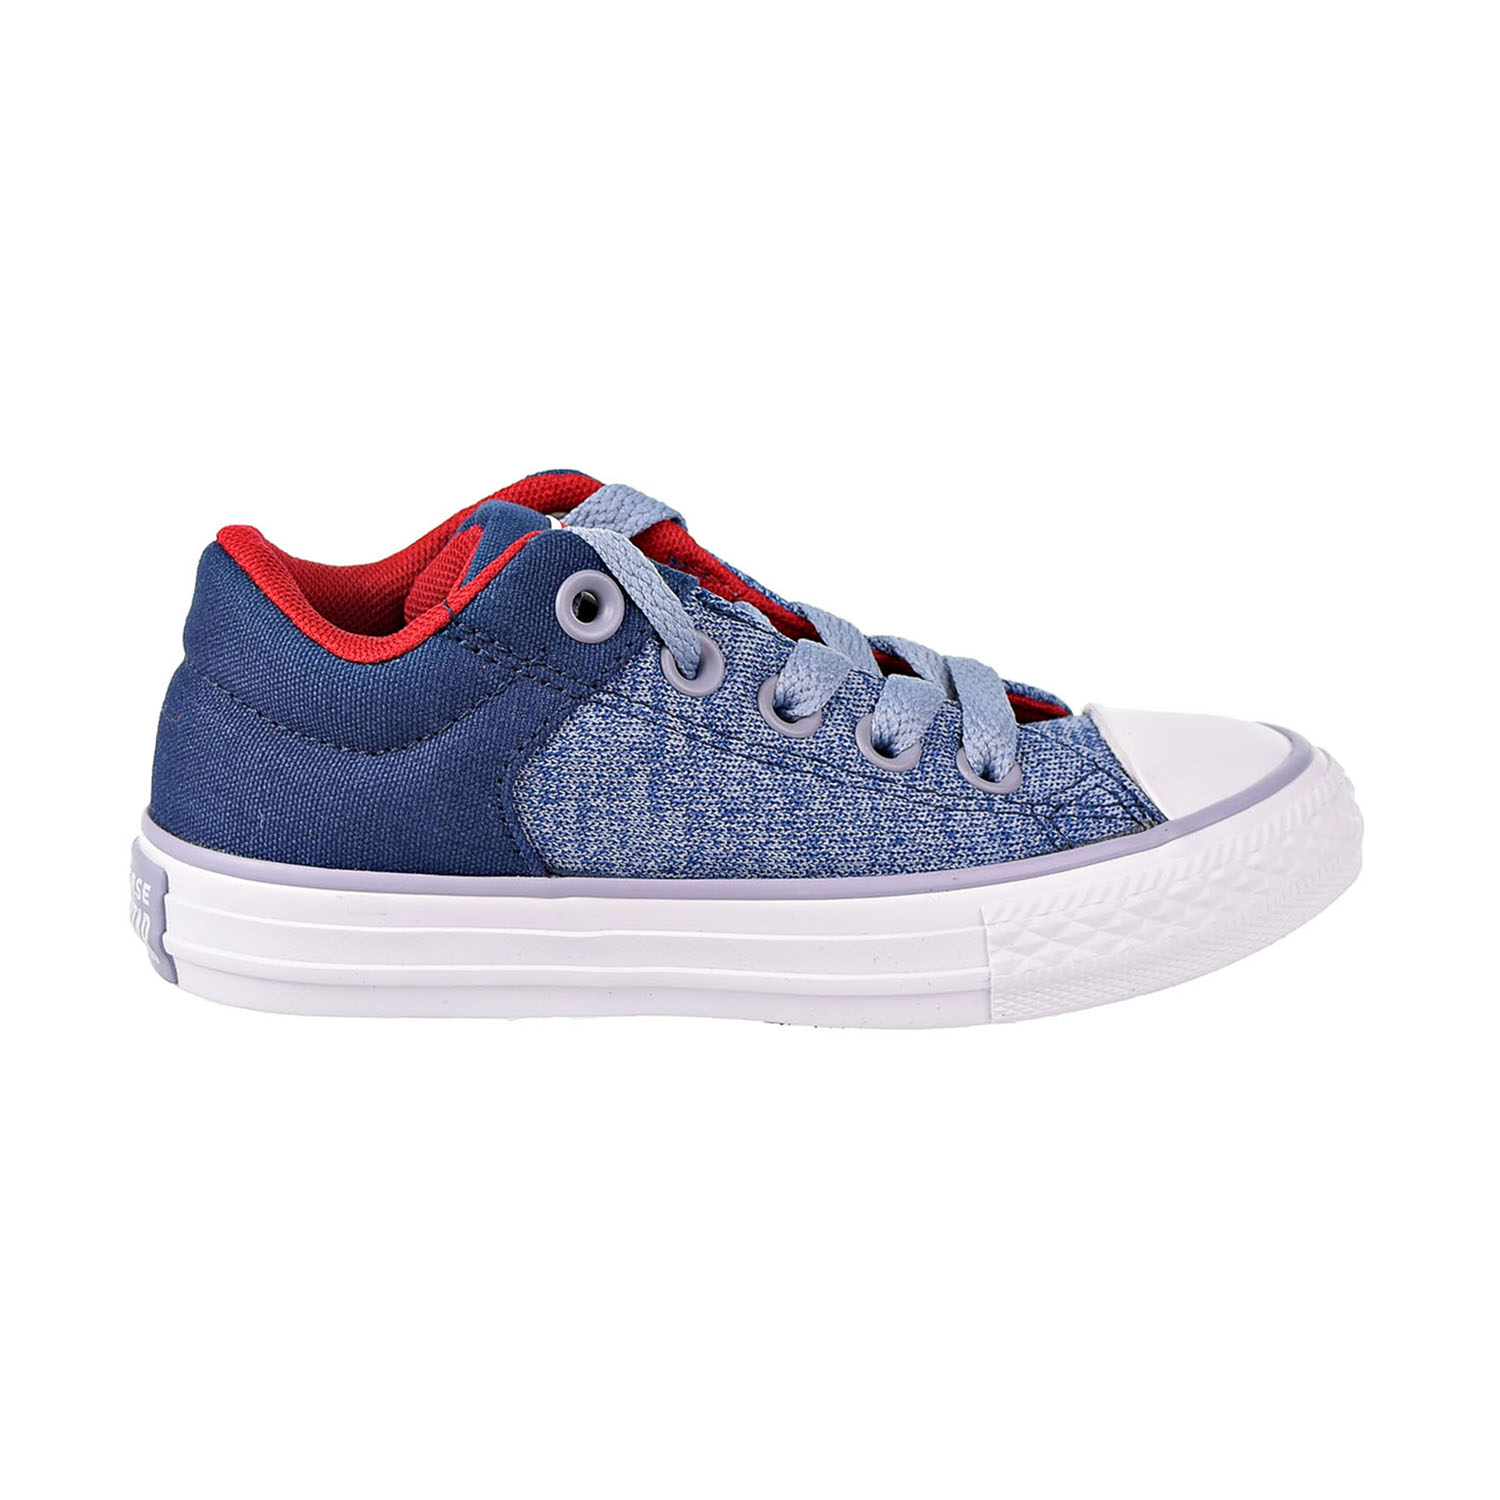 3bb672da85 Details about Converse Chuck Taylor All Star High Street Slip Kids  Shoes  Navy Grey 660721F